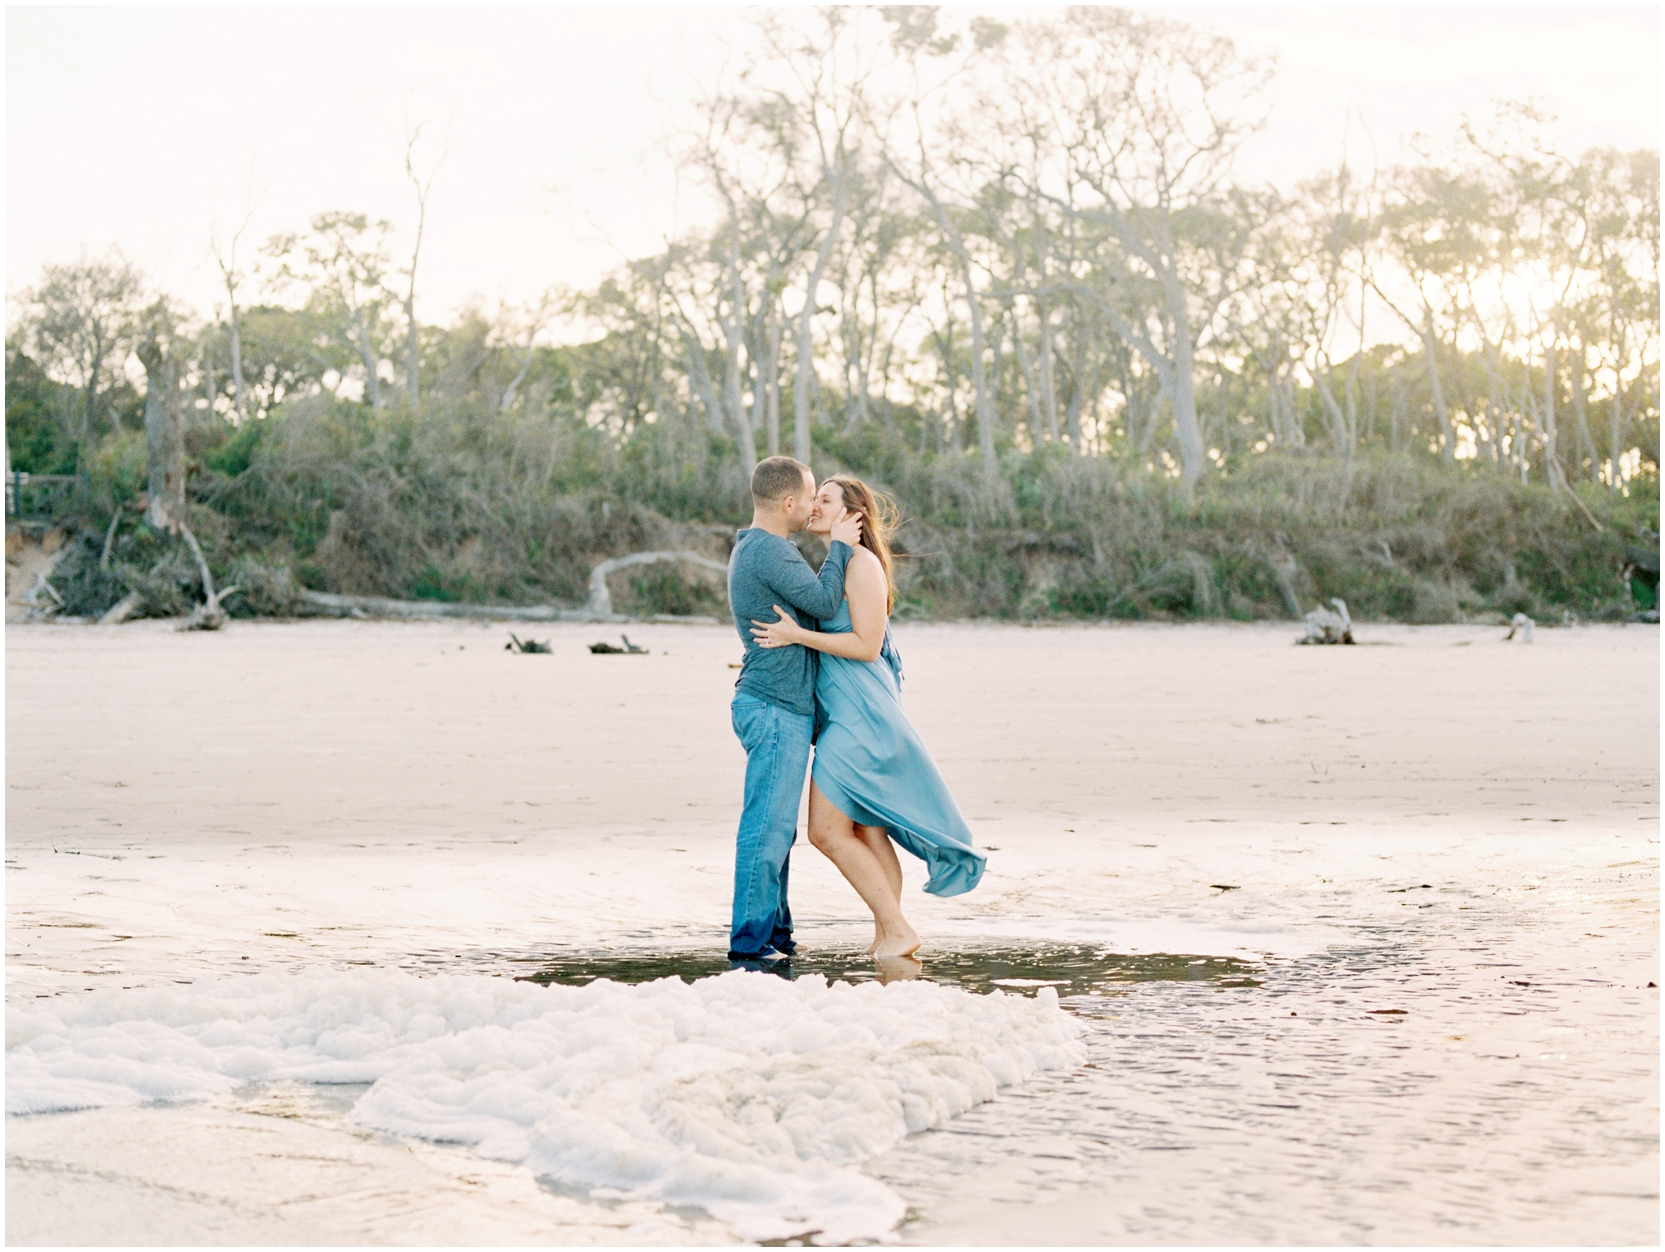 Lisa Silva Photography -Engagement Session at Big Talbot Island- Jacksonville and North East Florida Fine Art Film Photographer_0056.jpg